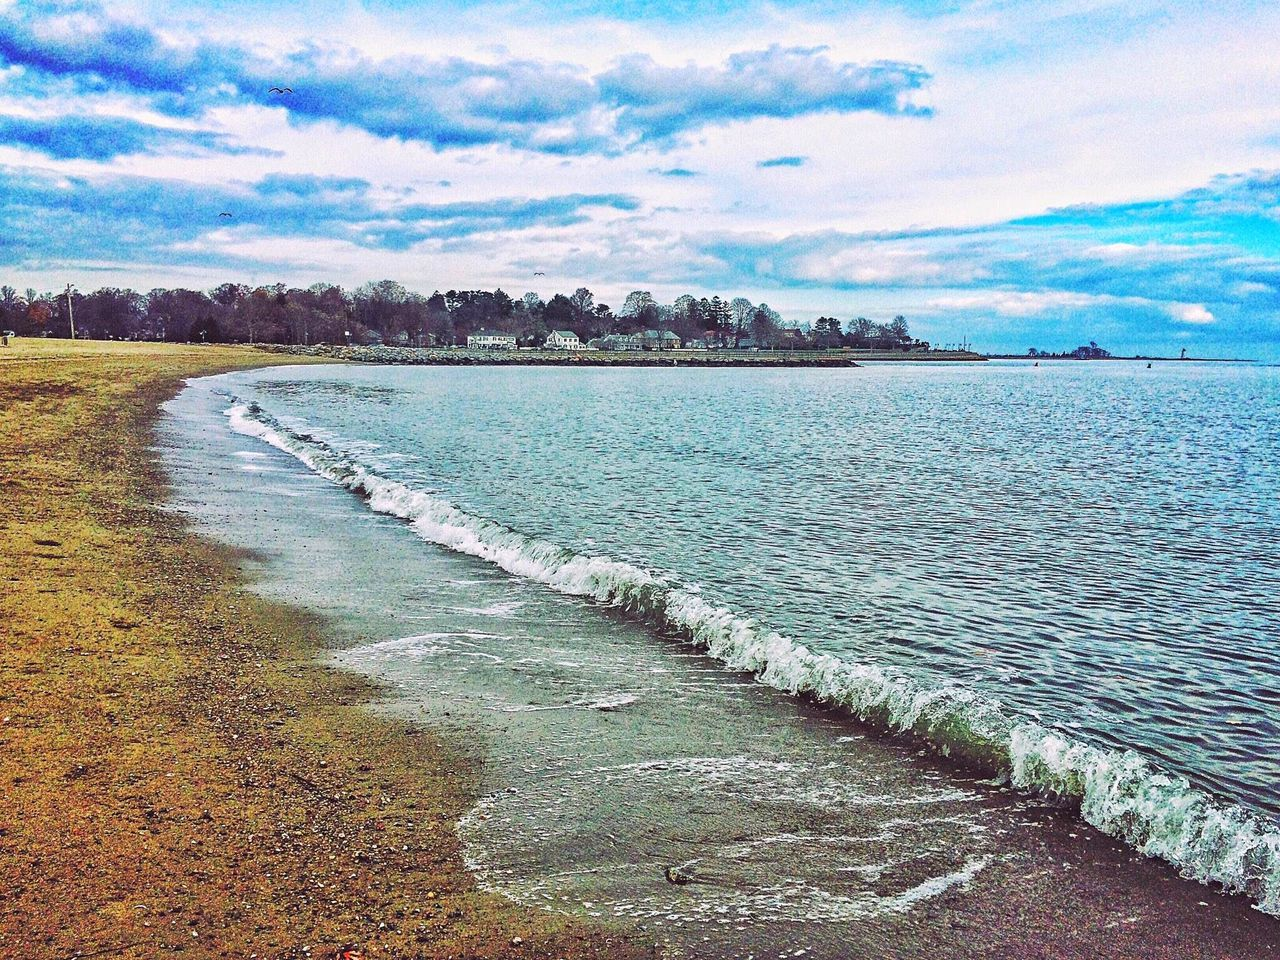 Penfield Beach in Fairfield Connecticut Outdoor Photography Outdoors❤ Outdoors Outside Outside Photography Nature USA IPhone Photography IPhoneography Water Beach Photography Beachphotography Long Island Sound The KIOMI Collection